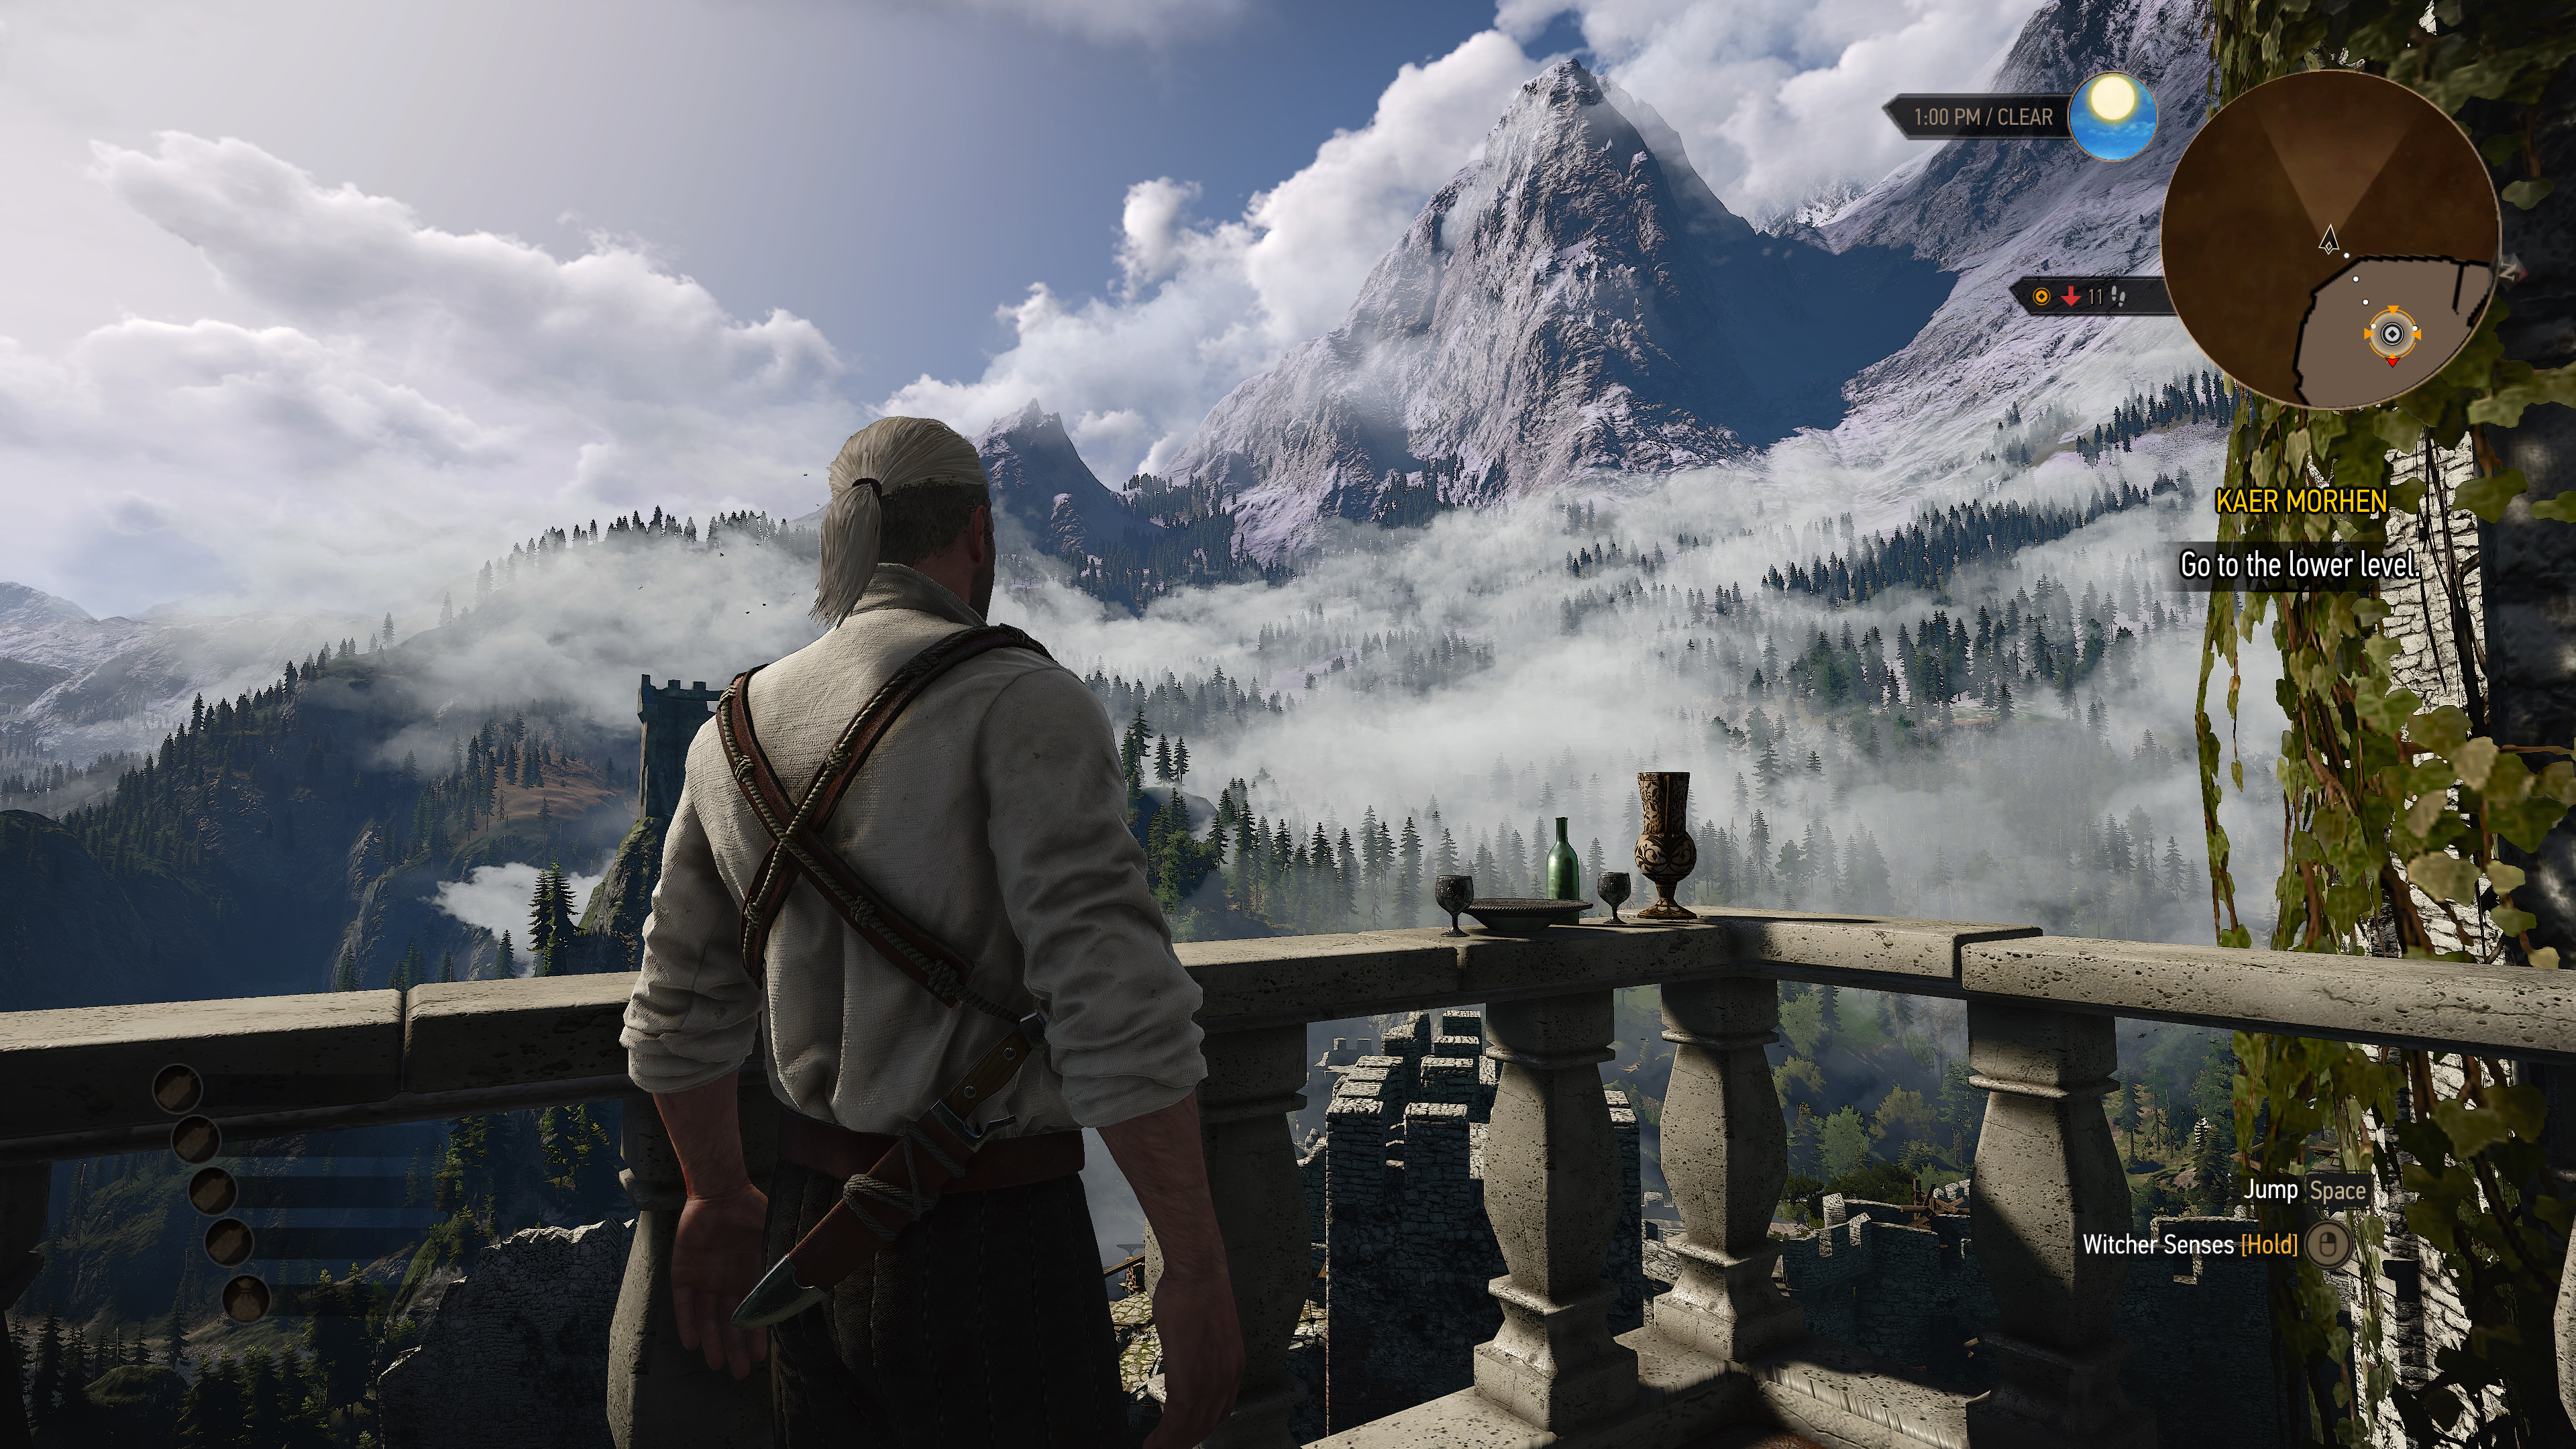 Witcher 3 and MGS5 screens at 4k on test build